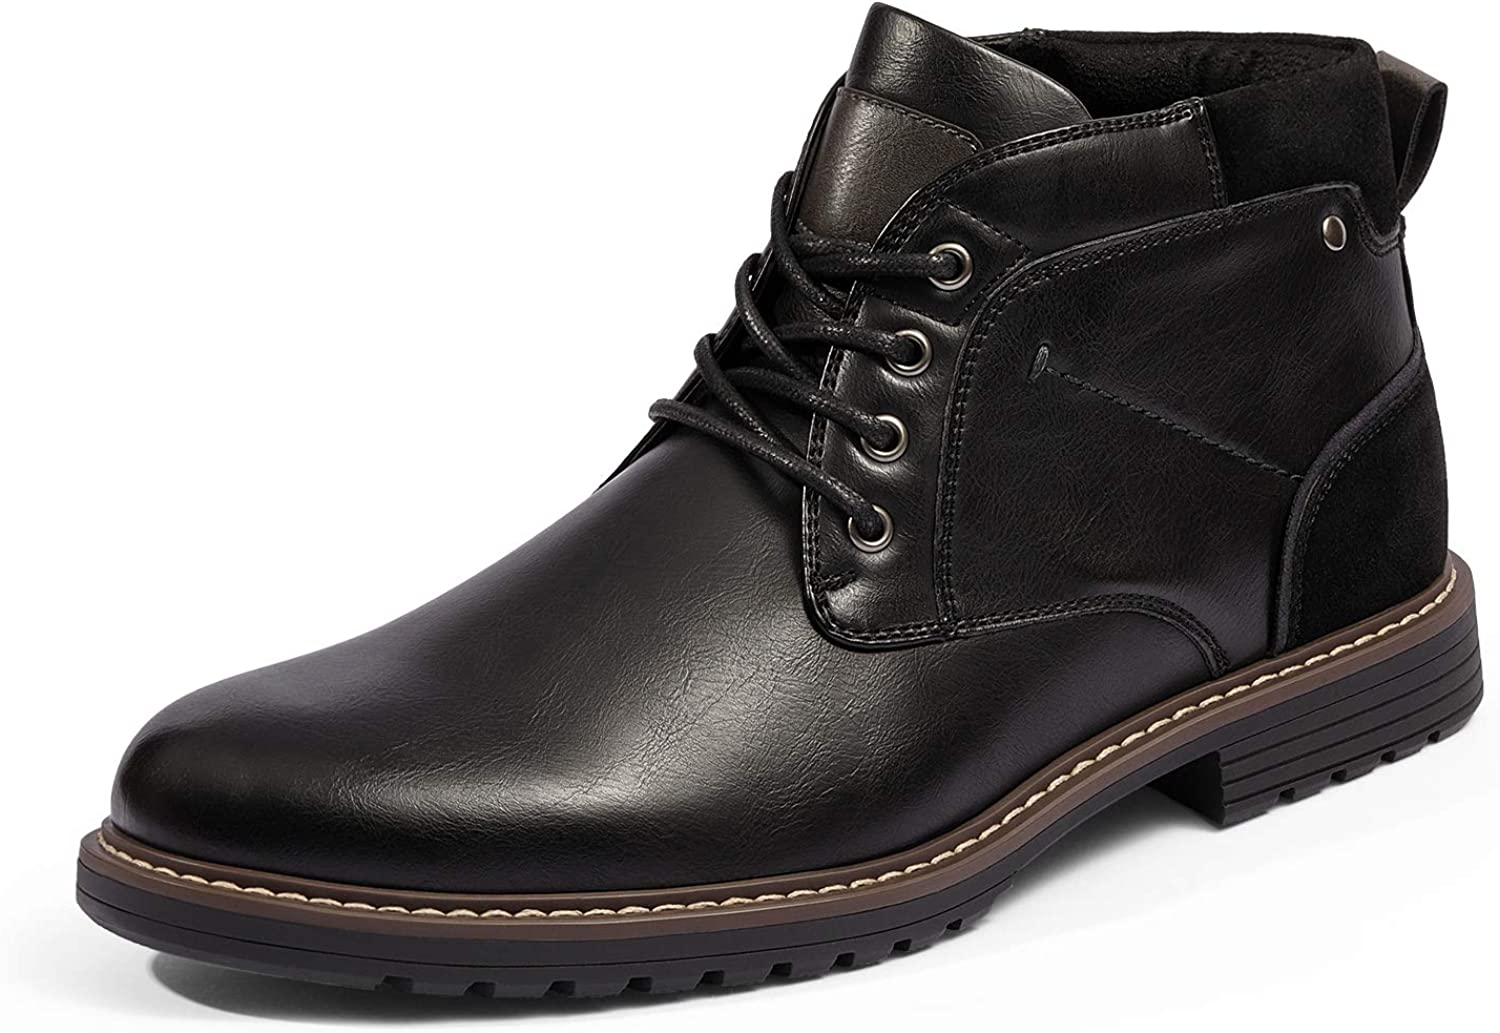 Bruno Marc Men's Chukka Dress Boots Casual Lace up Plain Toe Boot Shoes for Men